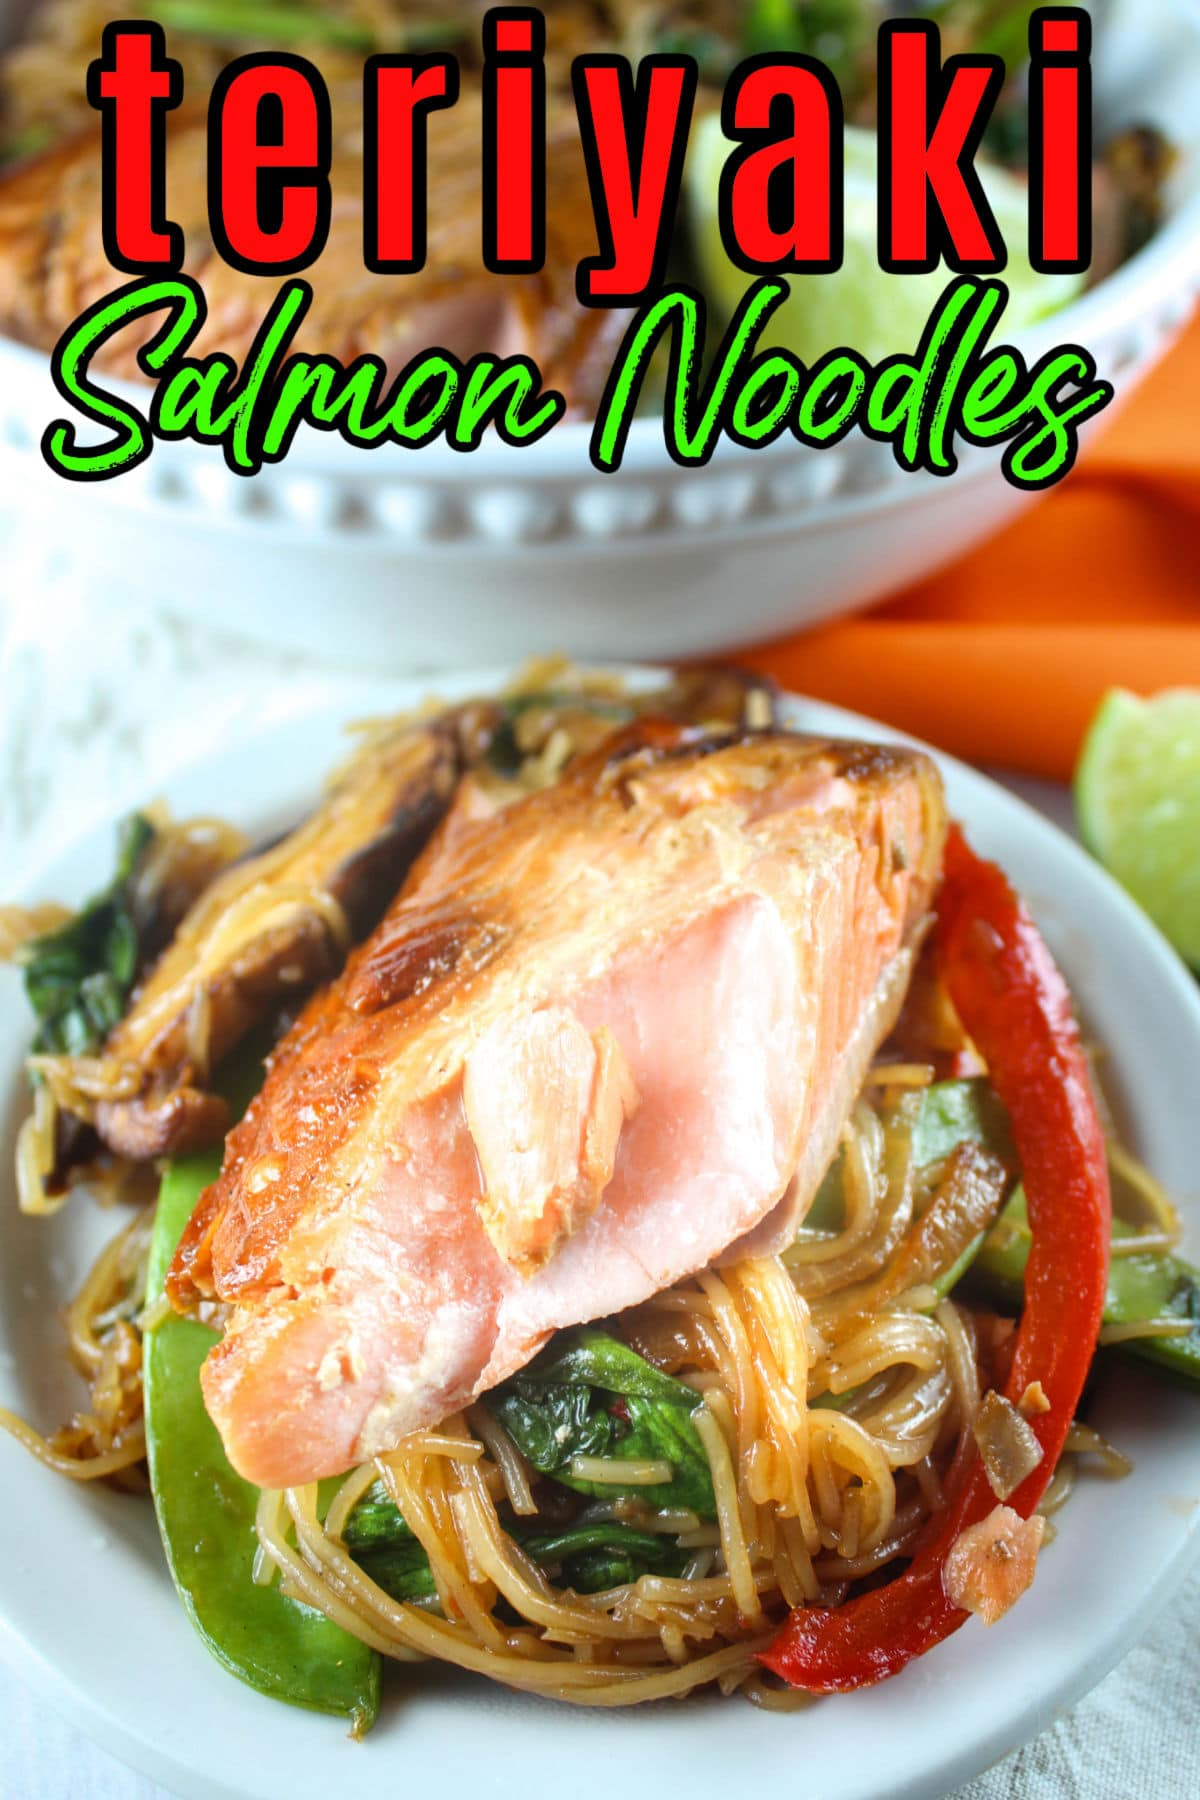 Teriyaki Salmon Noodles are a delicious, healthy and quick dinner - great for any night of the week! The Teriyaki is sweet and there are LOADS of vegetables in the noodles - it's a great one-bowl dish!  via @foodhussy